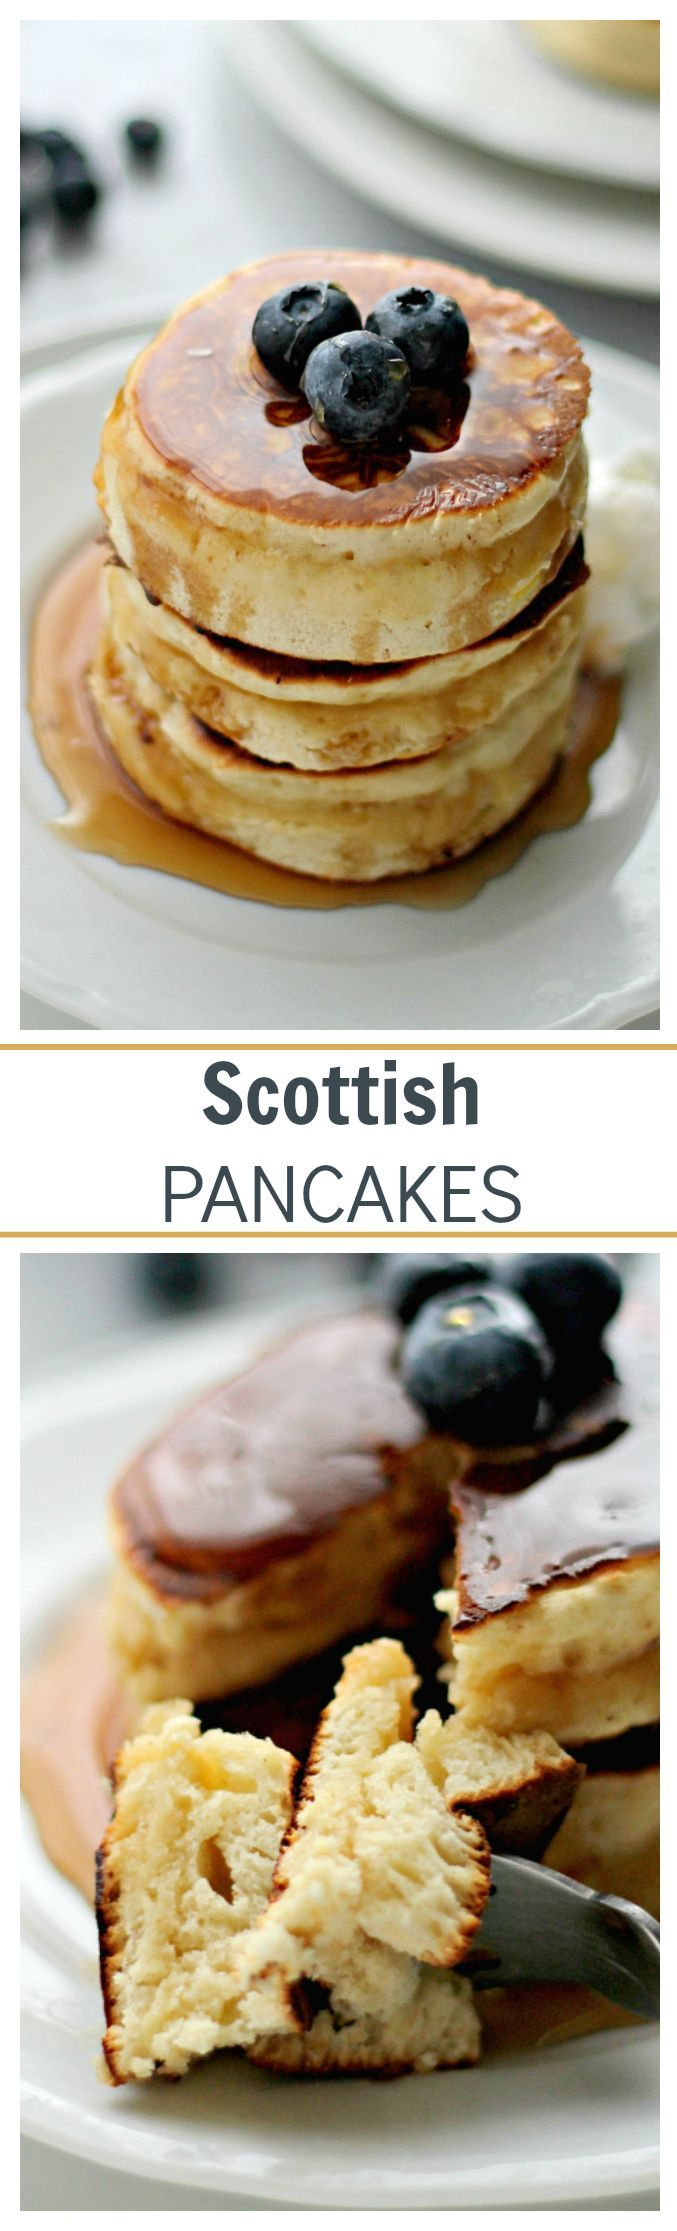 683 best european foods images on pinterest belgian recipes scottish pancakes diethood these are the fluffiest sweetest forumfinder Image collections